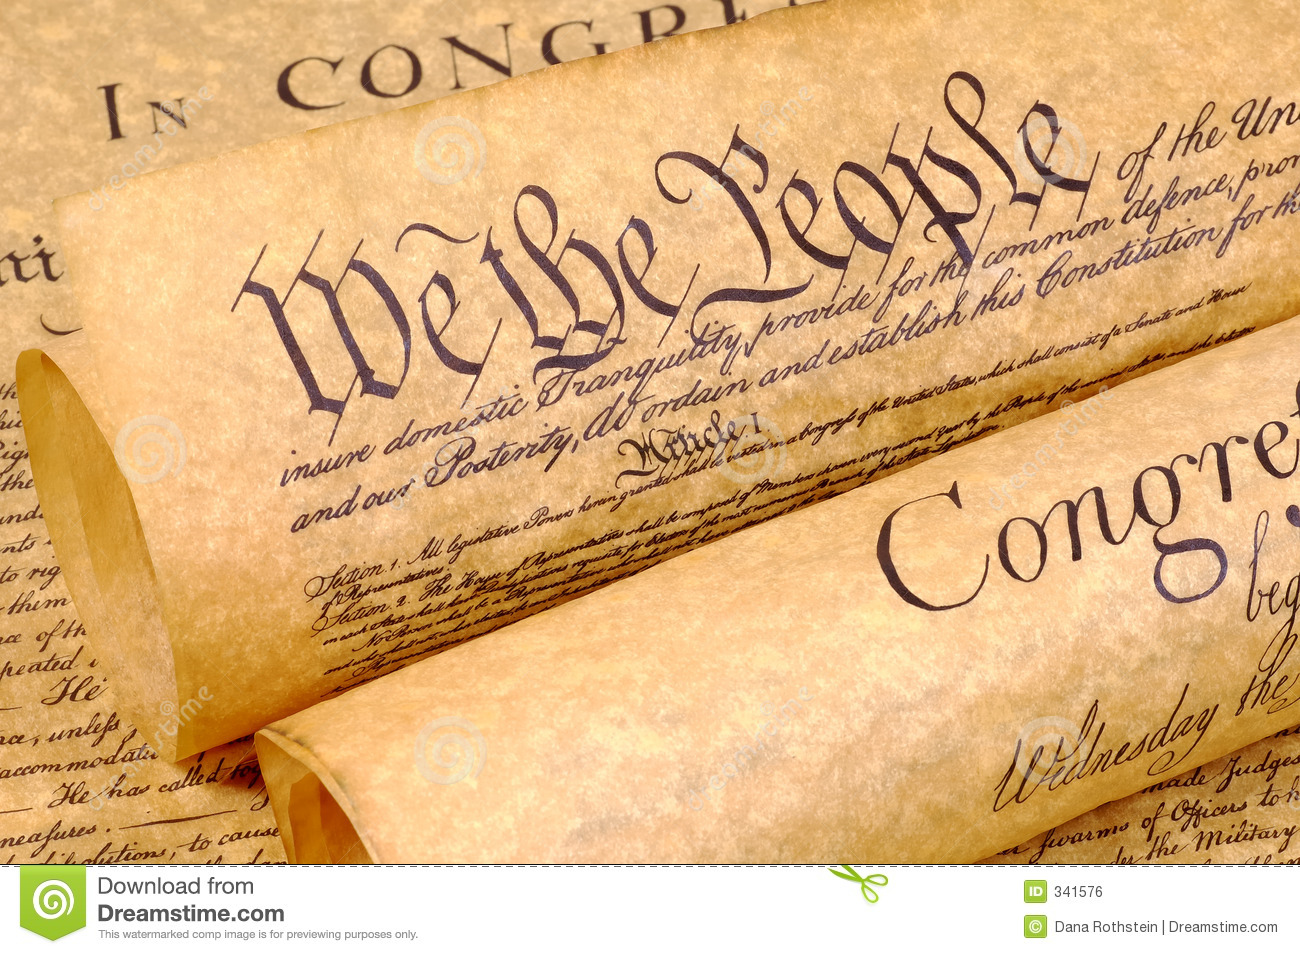 Declaration Of Independence Royalty Free Stock Image   Image  341576